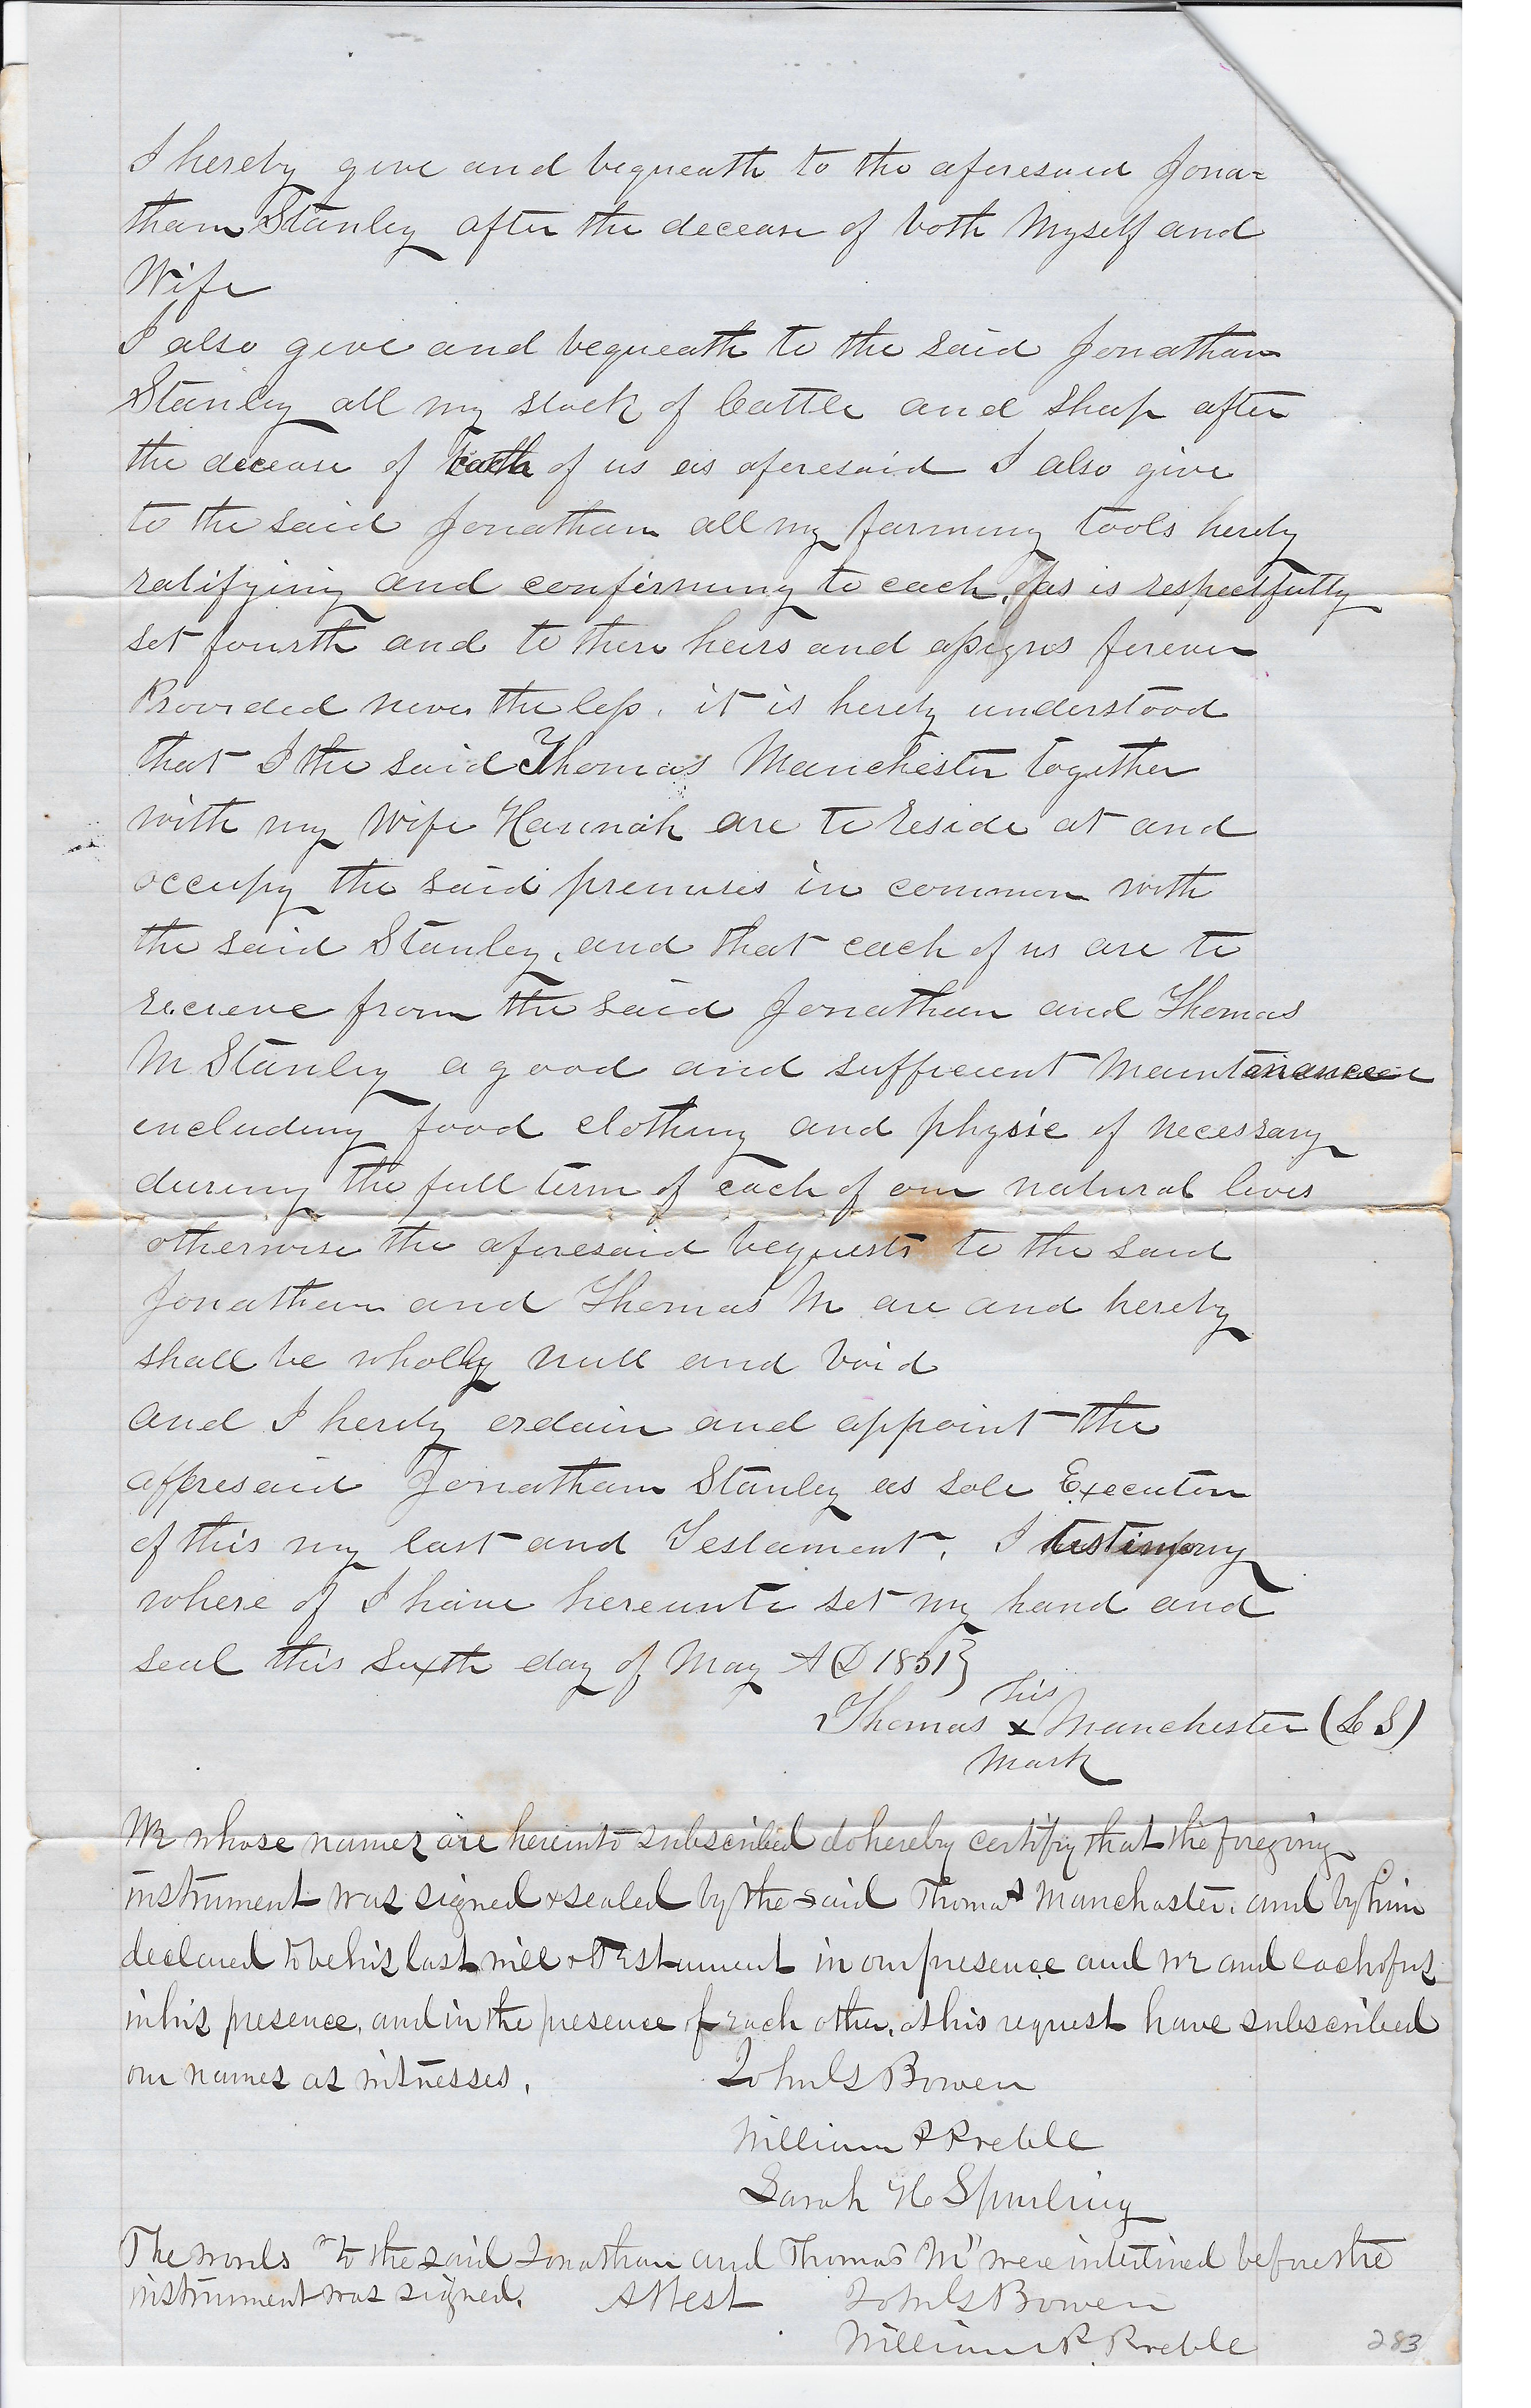 Last will and testament of Thomas Manchester